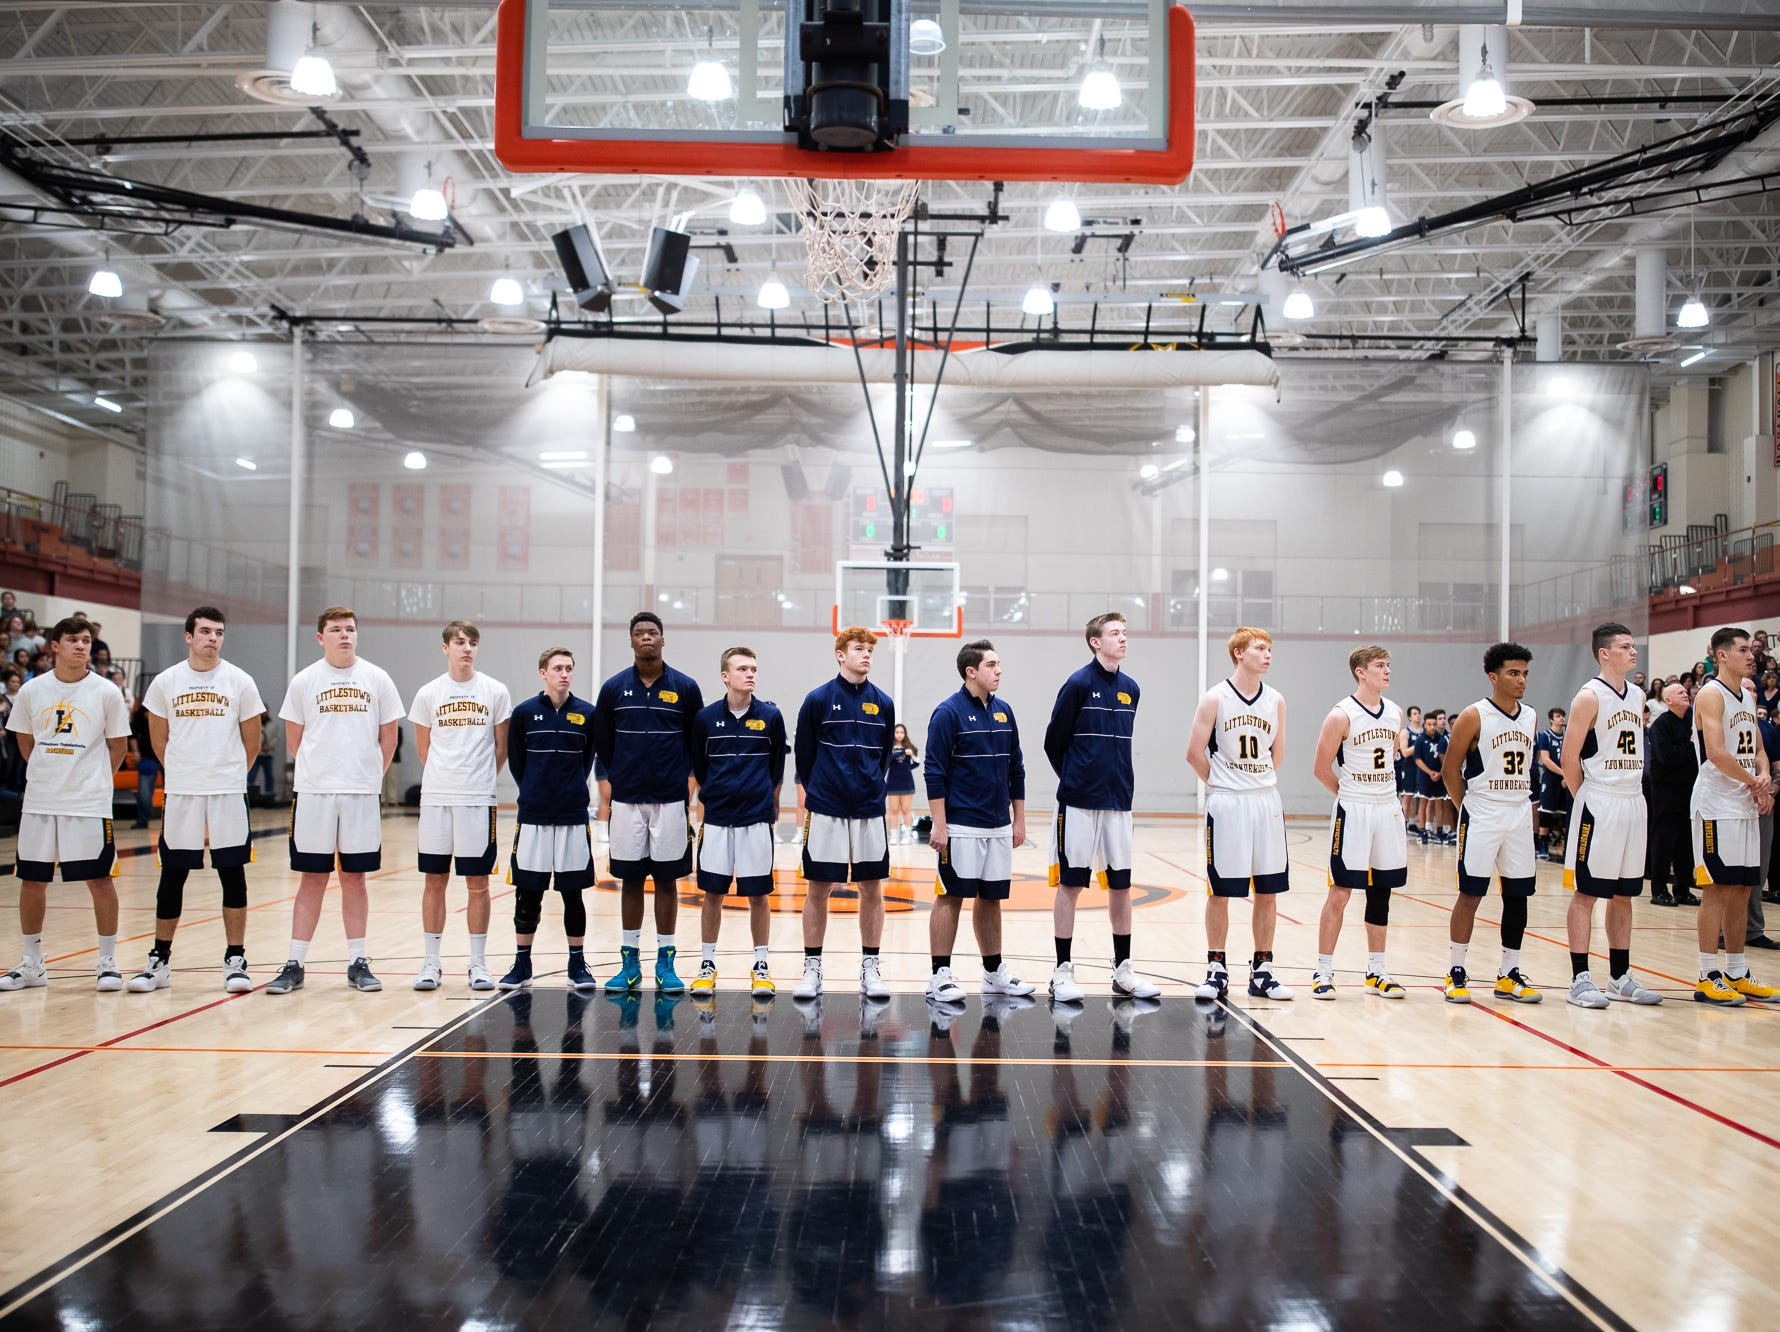 The Littlestown Bolts stand for the national anthem before the first half of the YAIAA boys' basketball quarterfinals between Littlestown and West York, Saturday, Feb. 9, 2019, at Central York High School. West York led Littlestown 33-31 at the half.